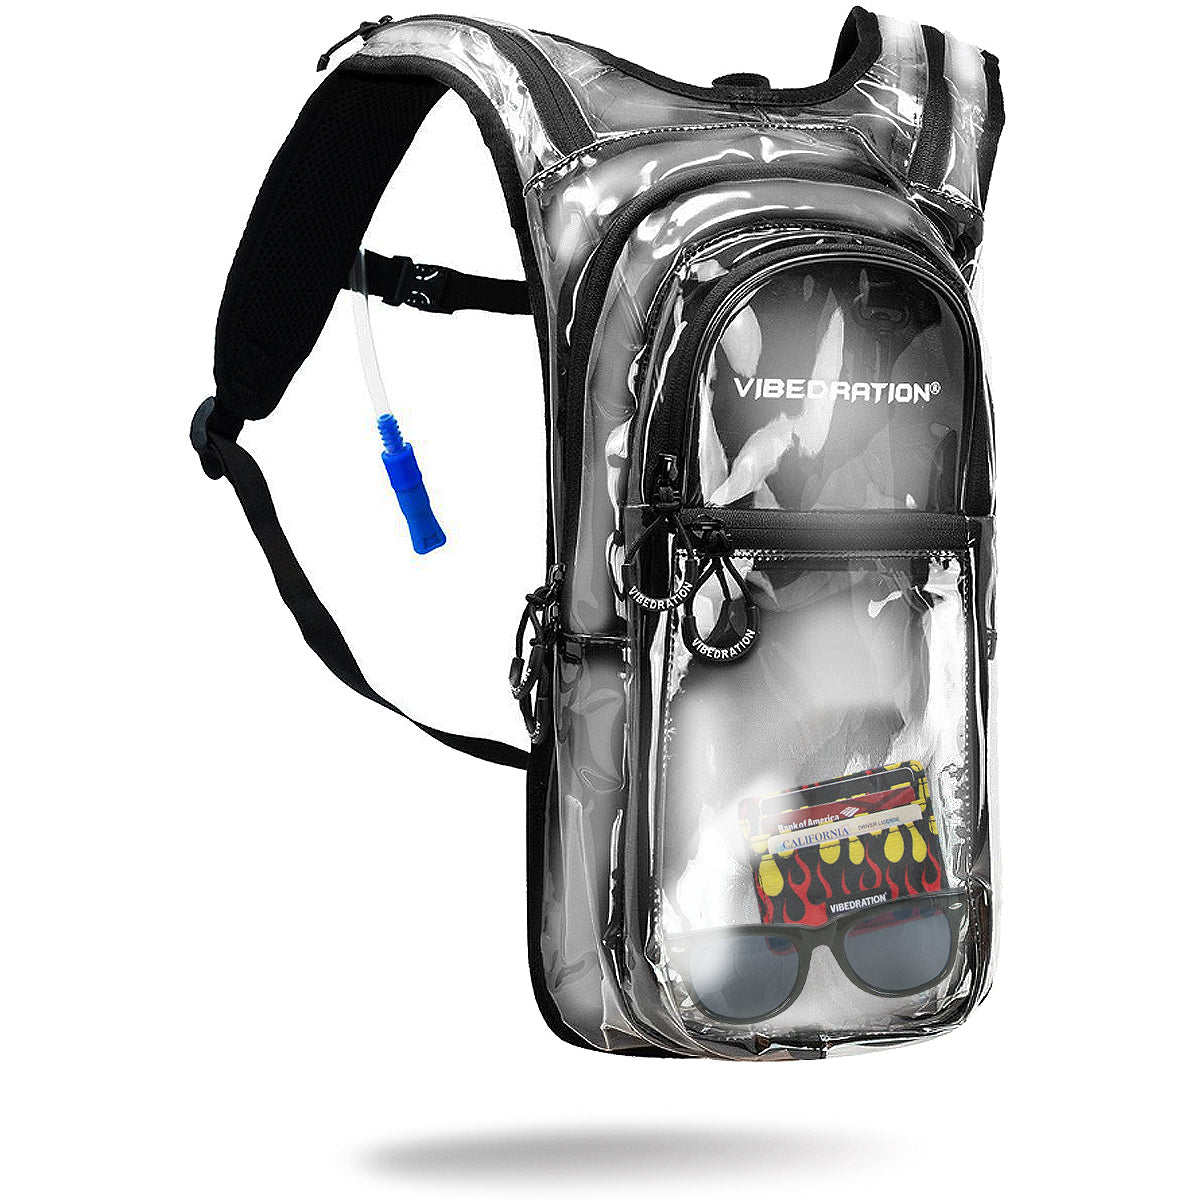 Crystal Clear VIP Bonnaroo Festival Hydration Pack VIP 2.0L - Product Shot